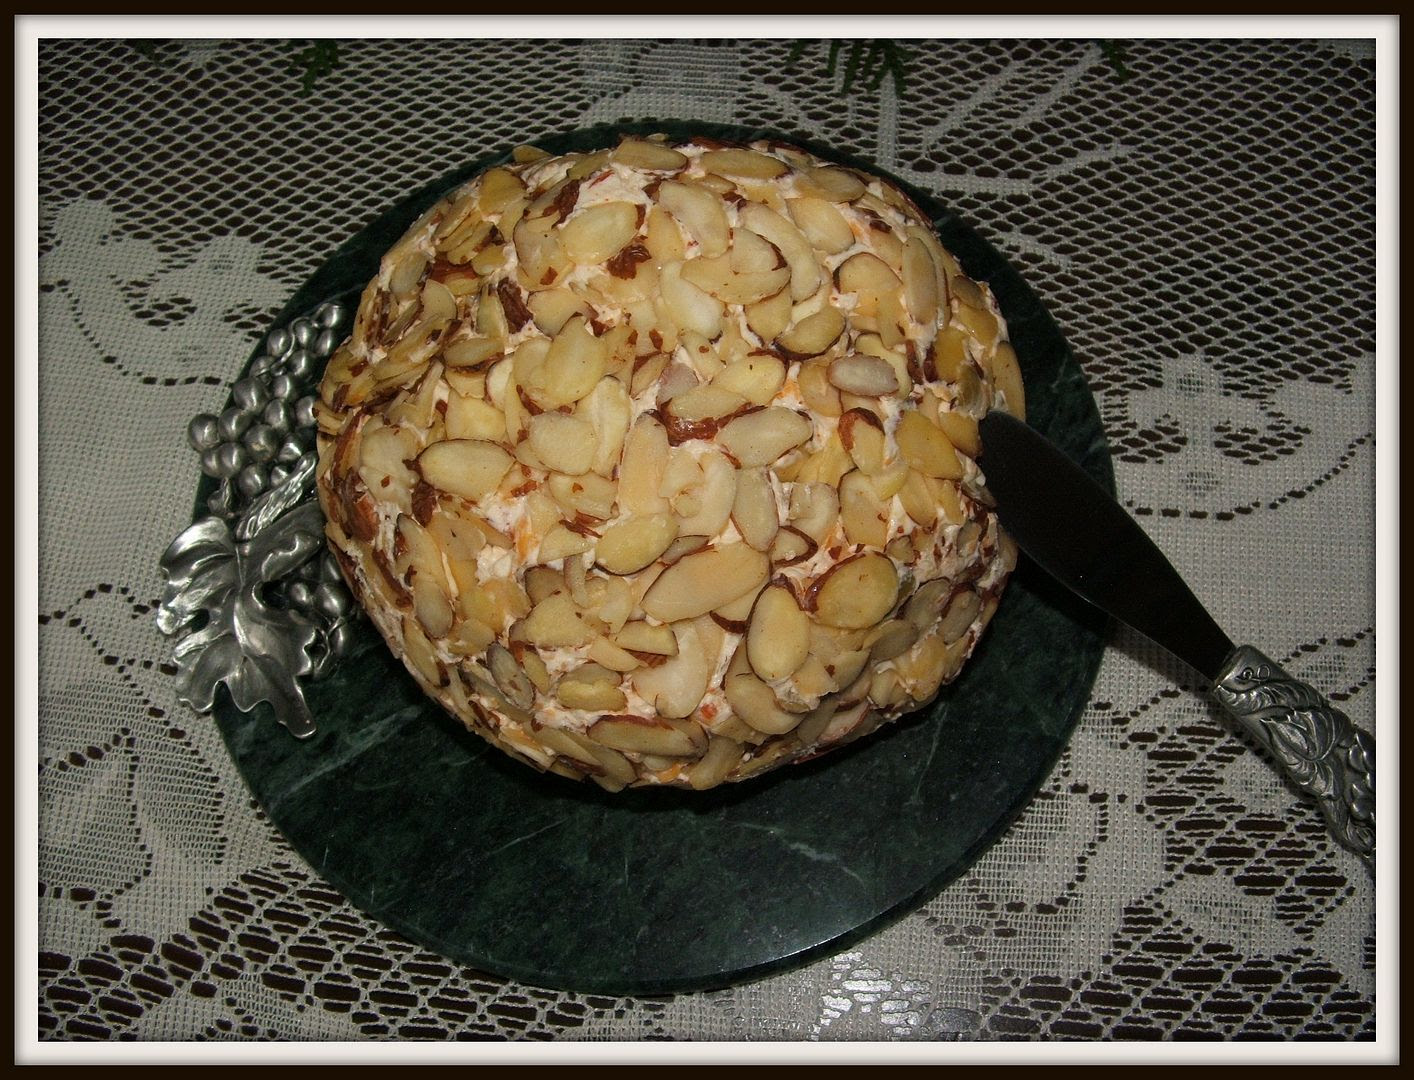 Cheeseball by Angie Ouellette-Tower for godsgrowinggarden.com photo 006_zps7bbf7c75.jpg